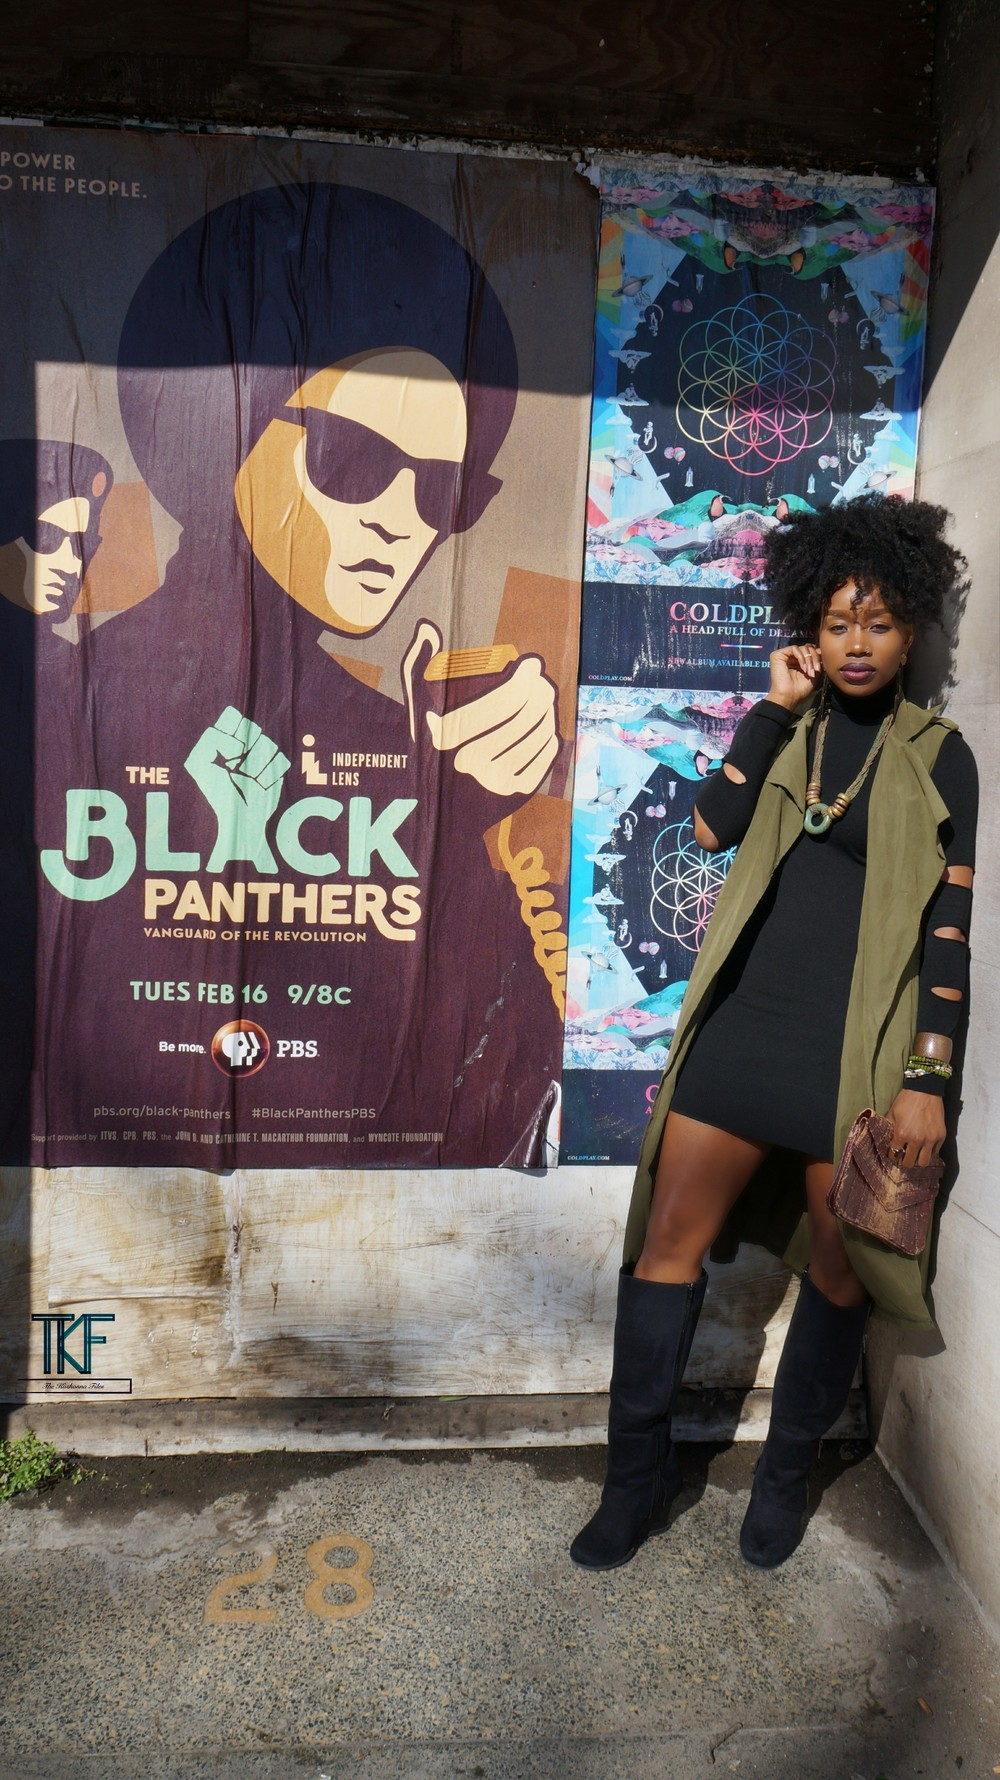 Black-panther-documentary.jpg